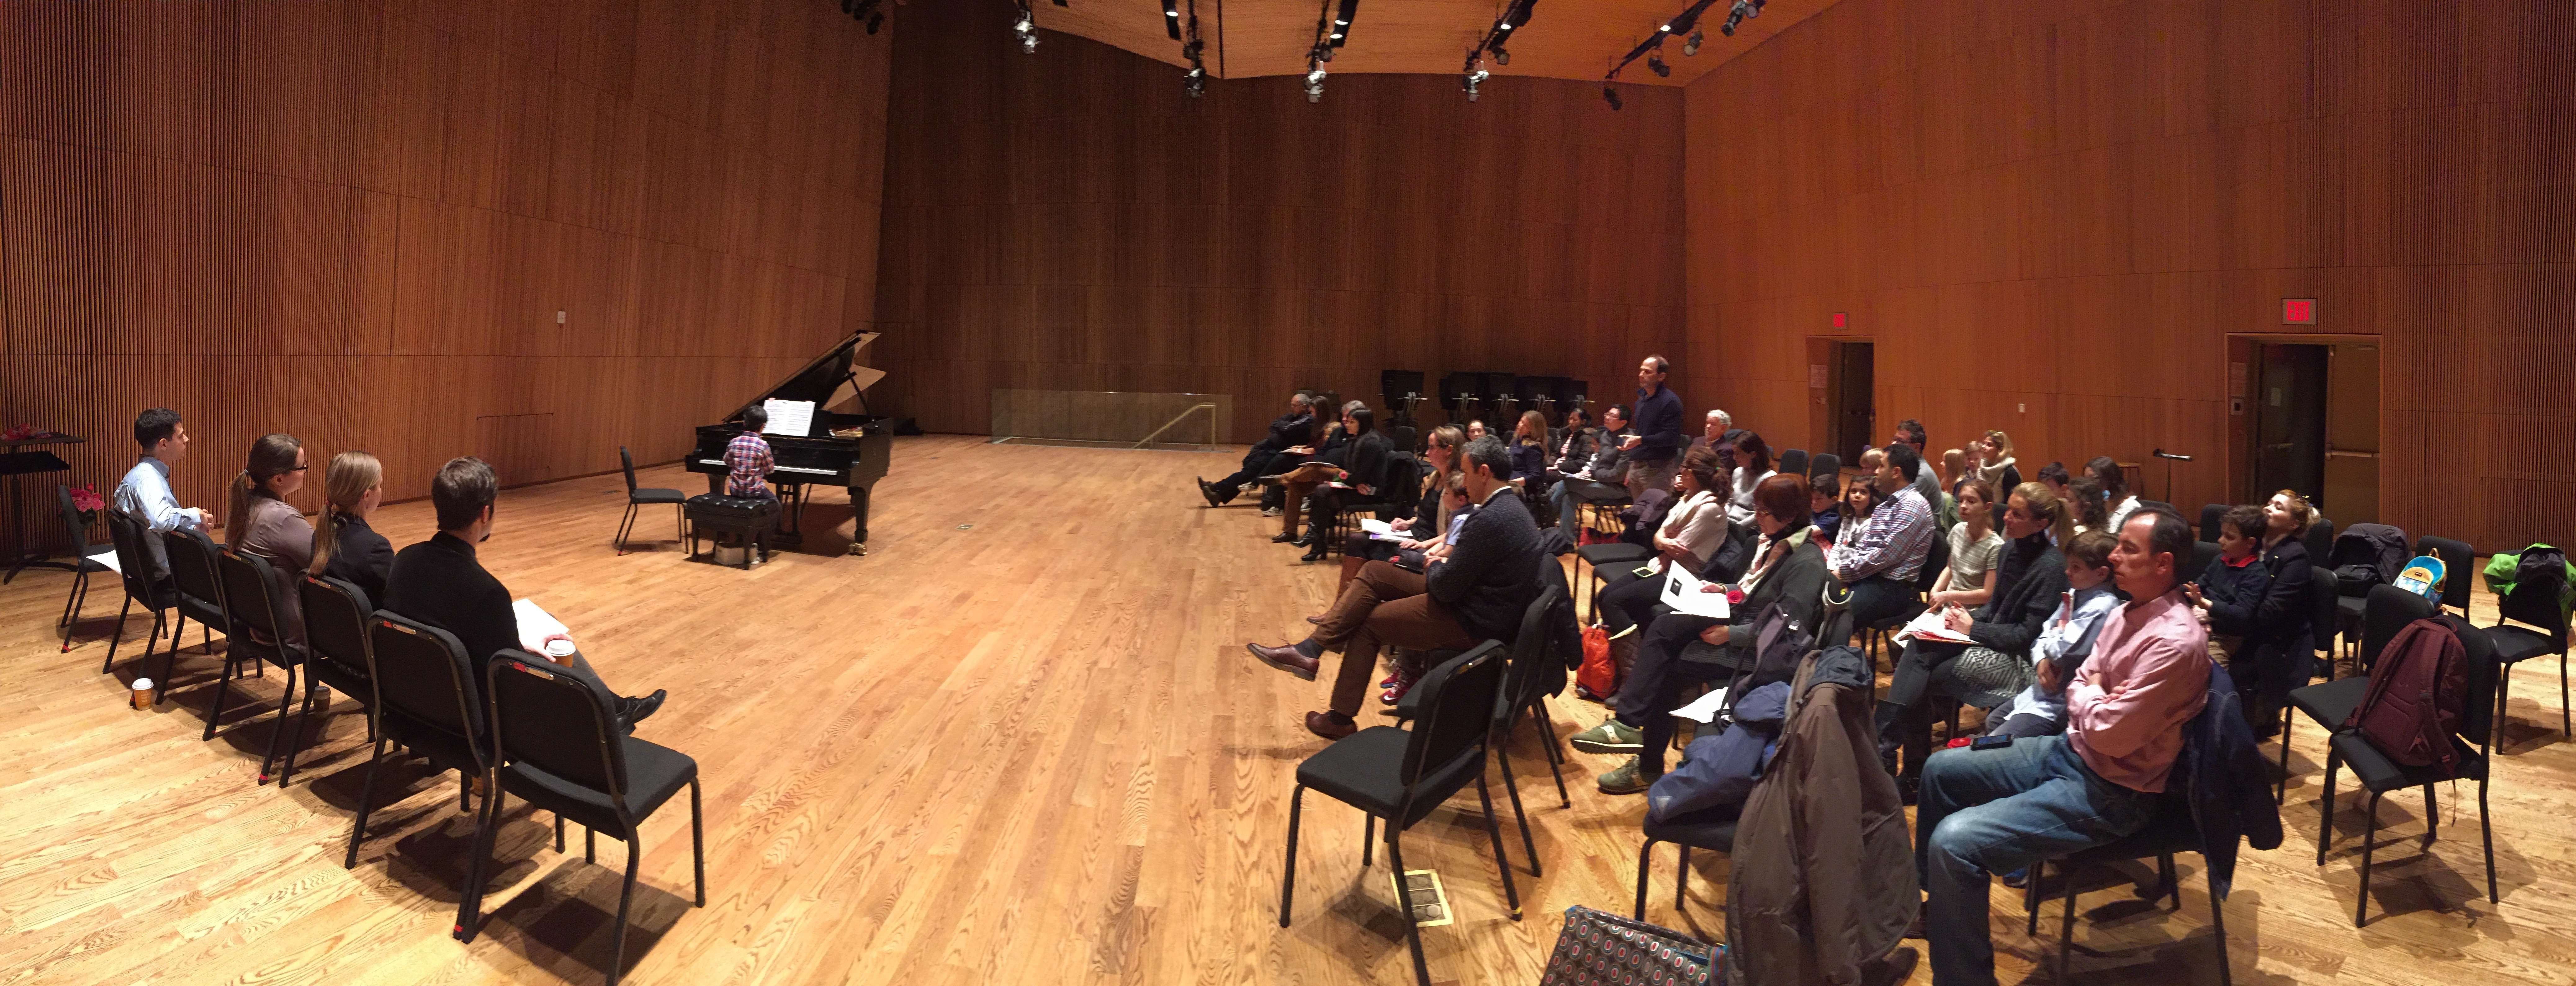 Piano Recital for students of our music studio in NYC